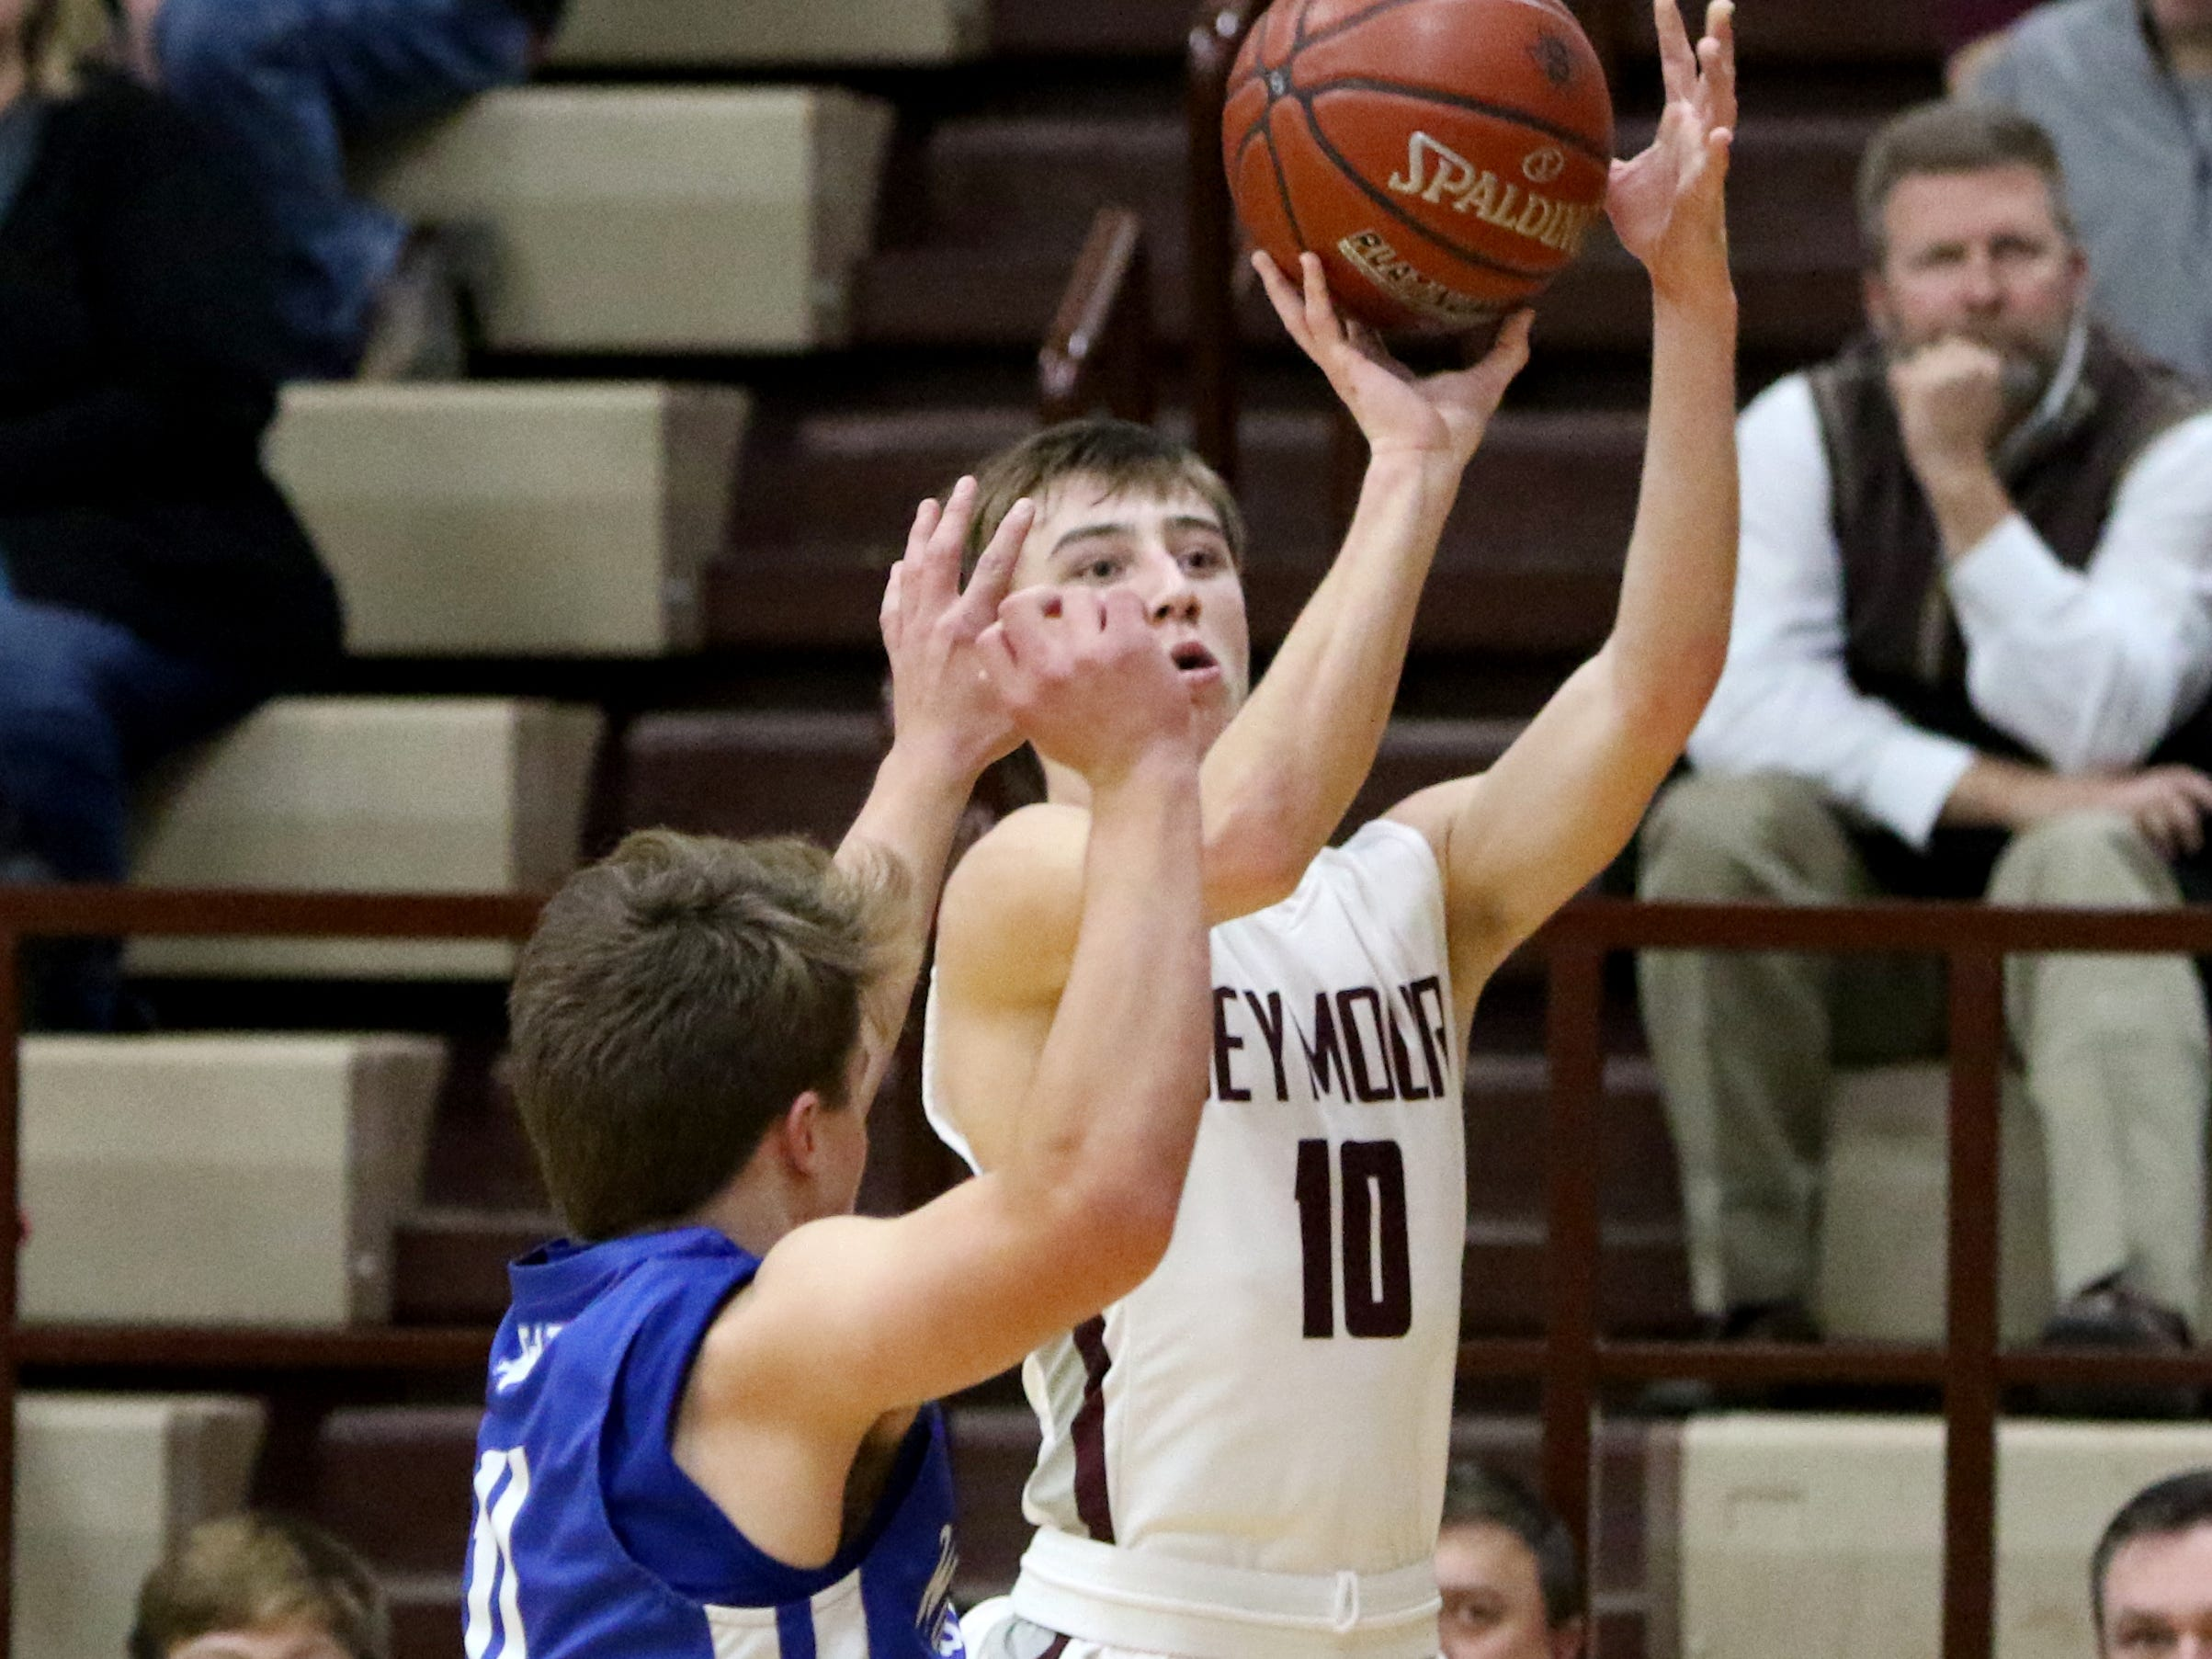 Seymour's Garrett Siegert shoots from three-point range against Windthorst Tuesday, Jan. 8, 2019, in Seymour.